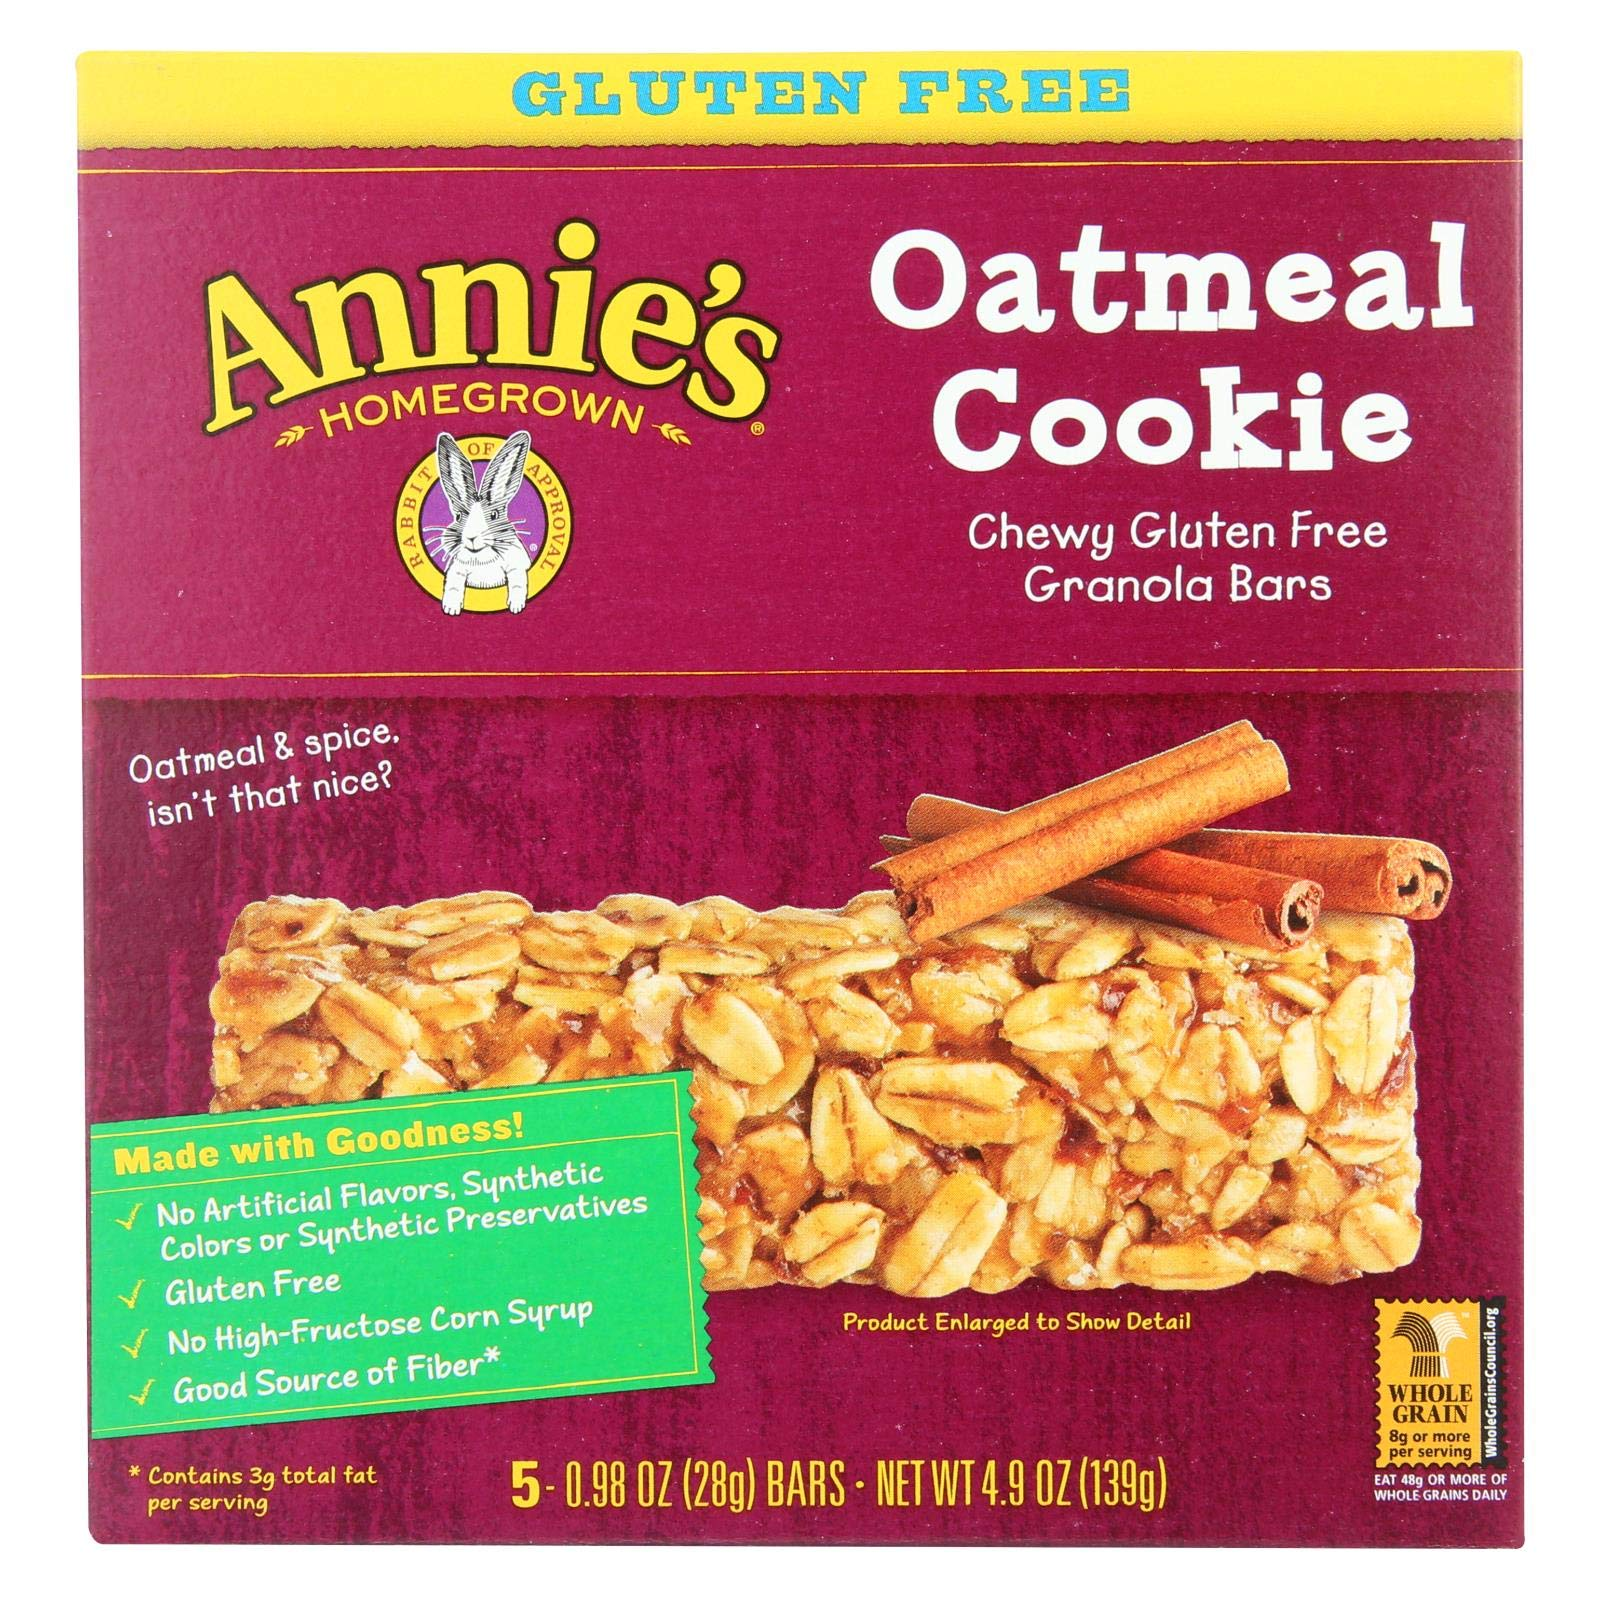 Annie's Homegrown Chewy Gluten Free Granola Bars Oatmeal Cookies - Case of 12 - 4.9 oz. by Annie's Homegrown